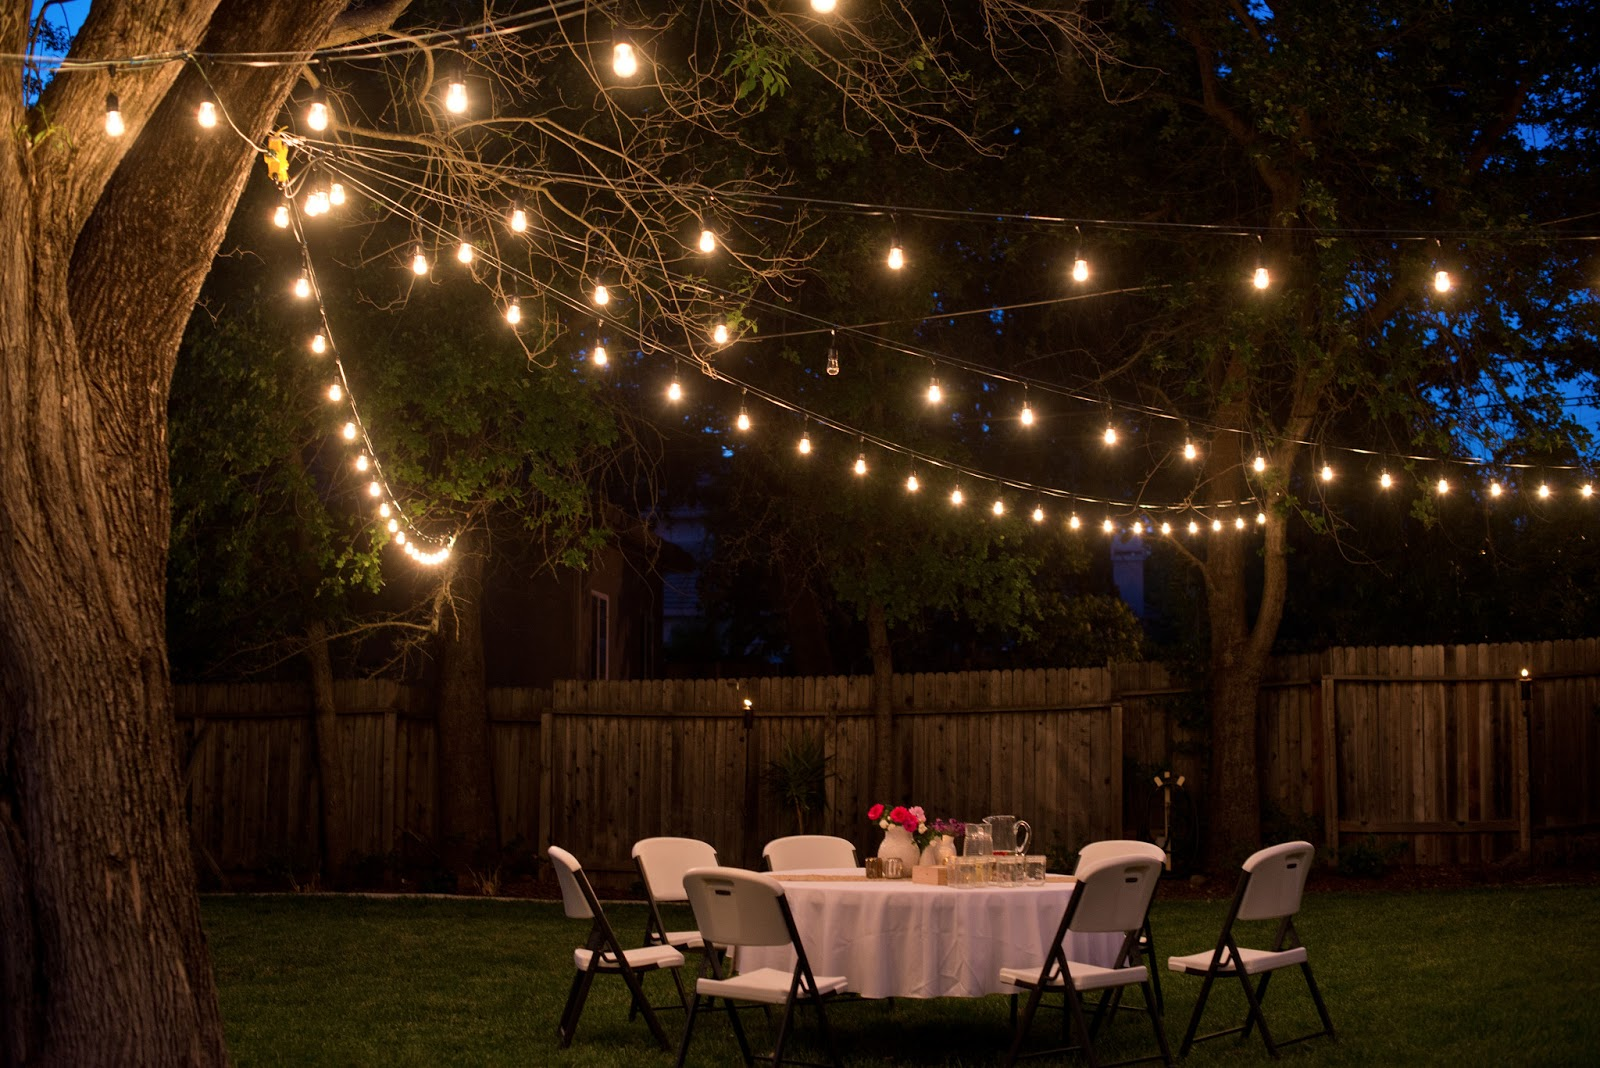 Party Lighting Ideas: Domestic Fashionista: Backyard Anniversary Dinner Party